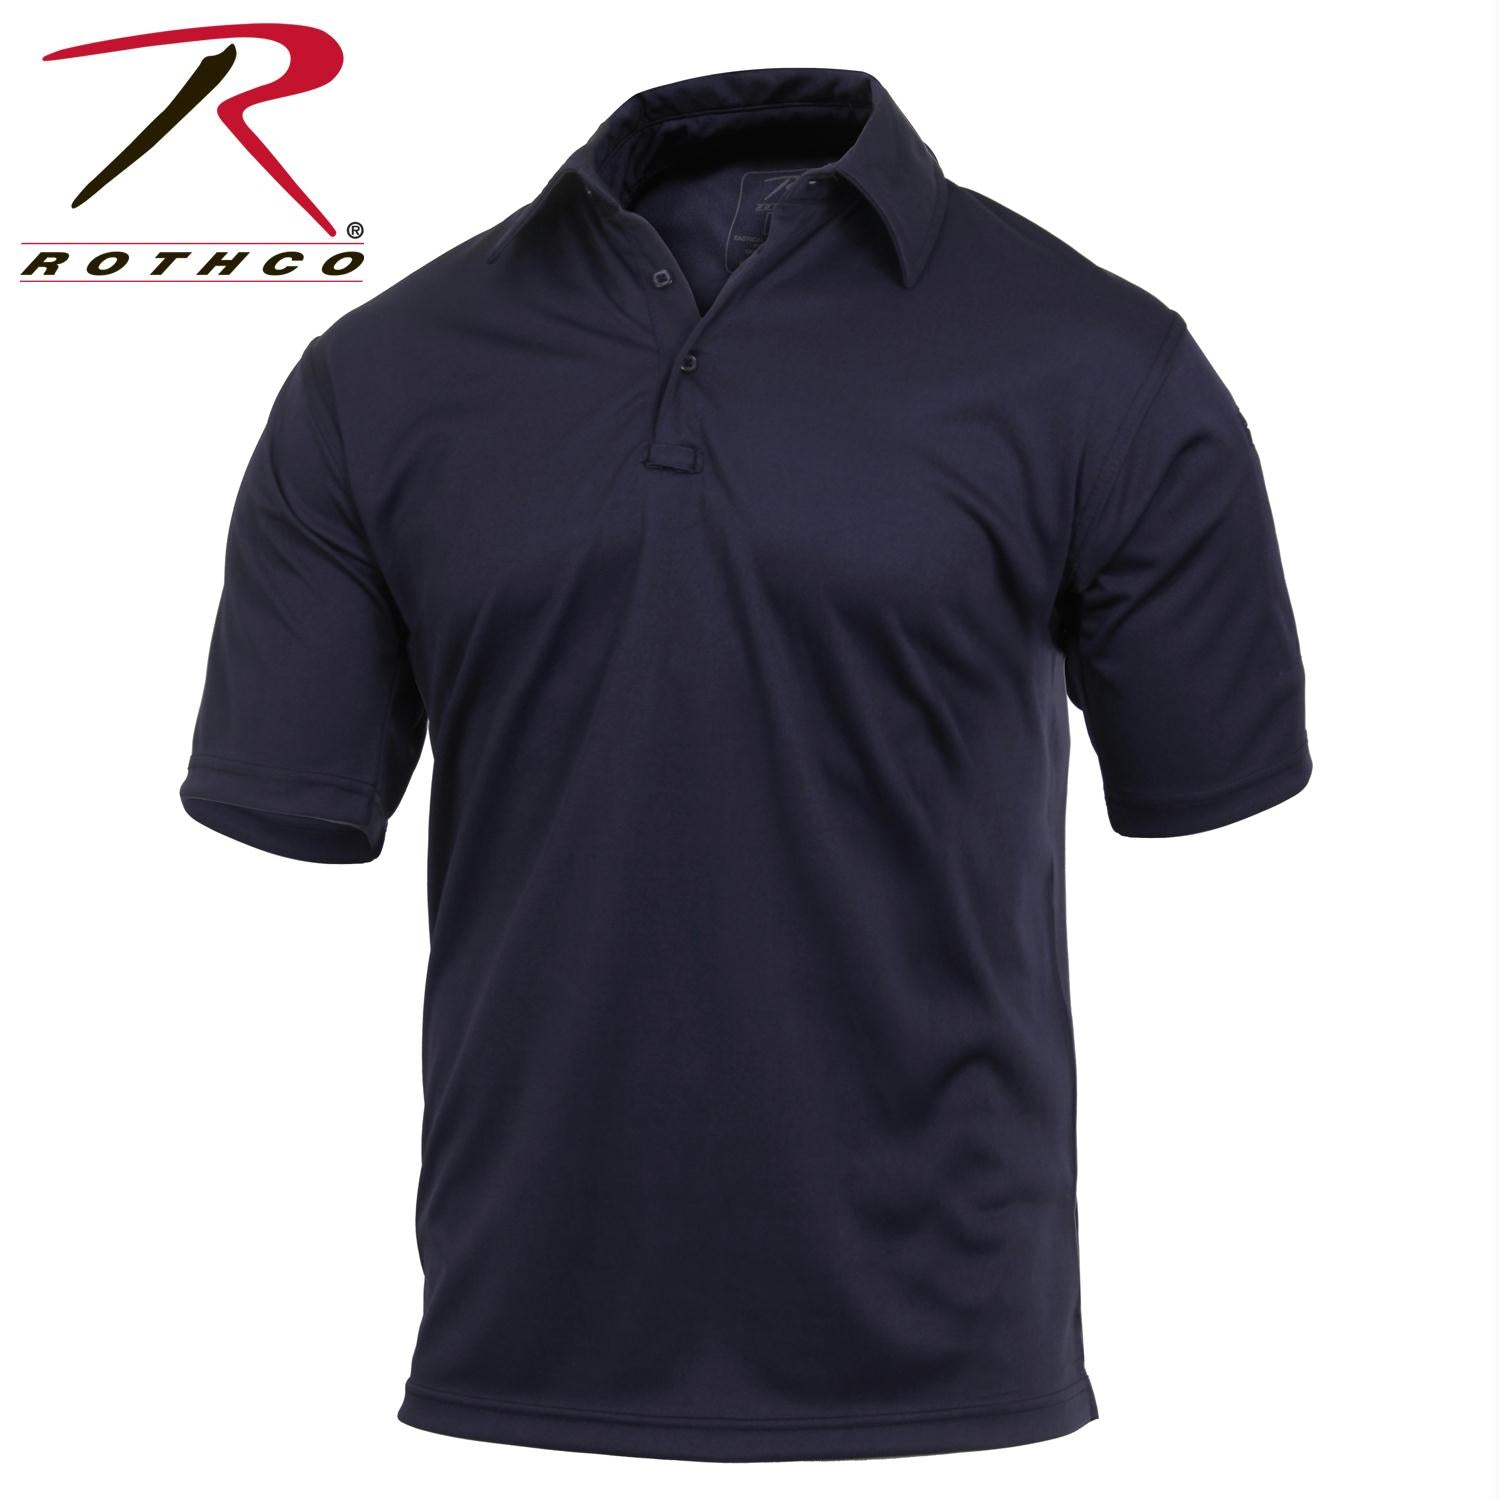 Rothco Tactical Performance Polo Shirt - Midnight Navy Blue / M